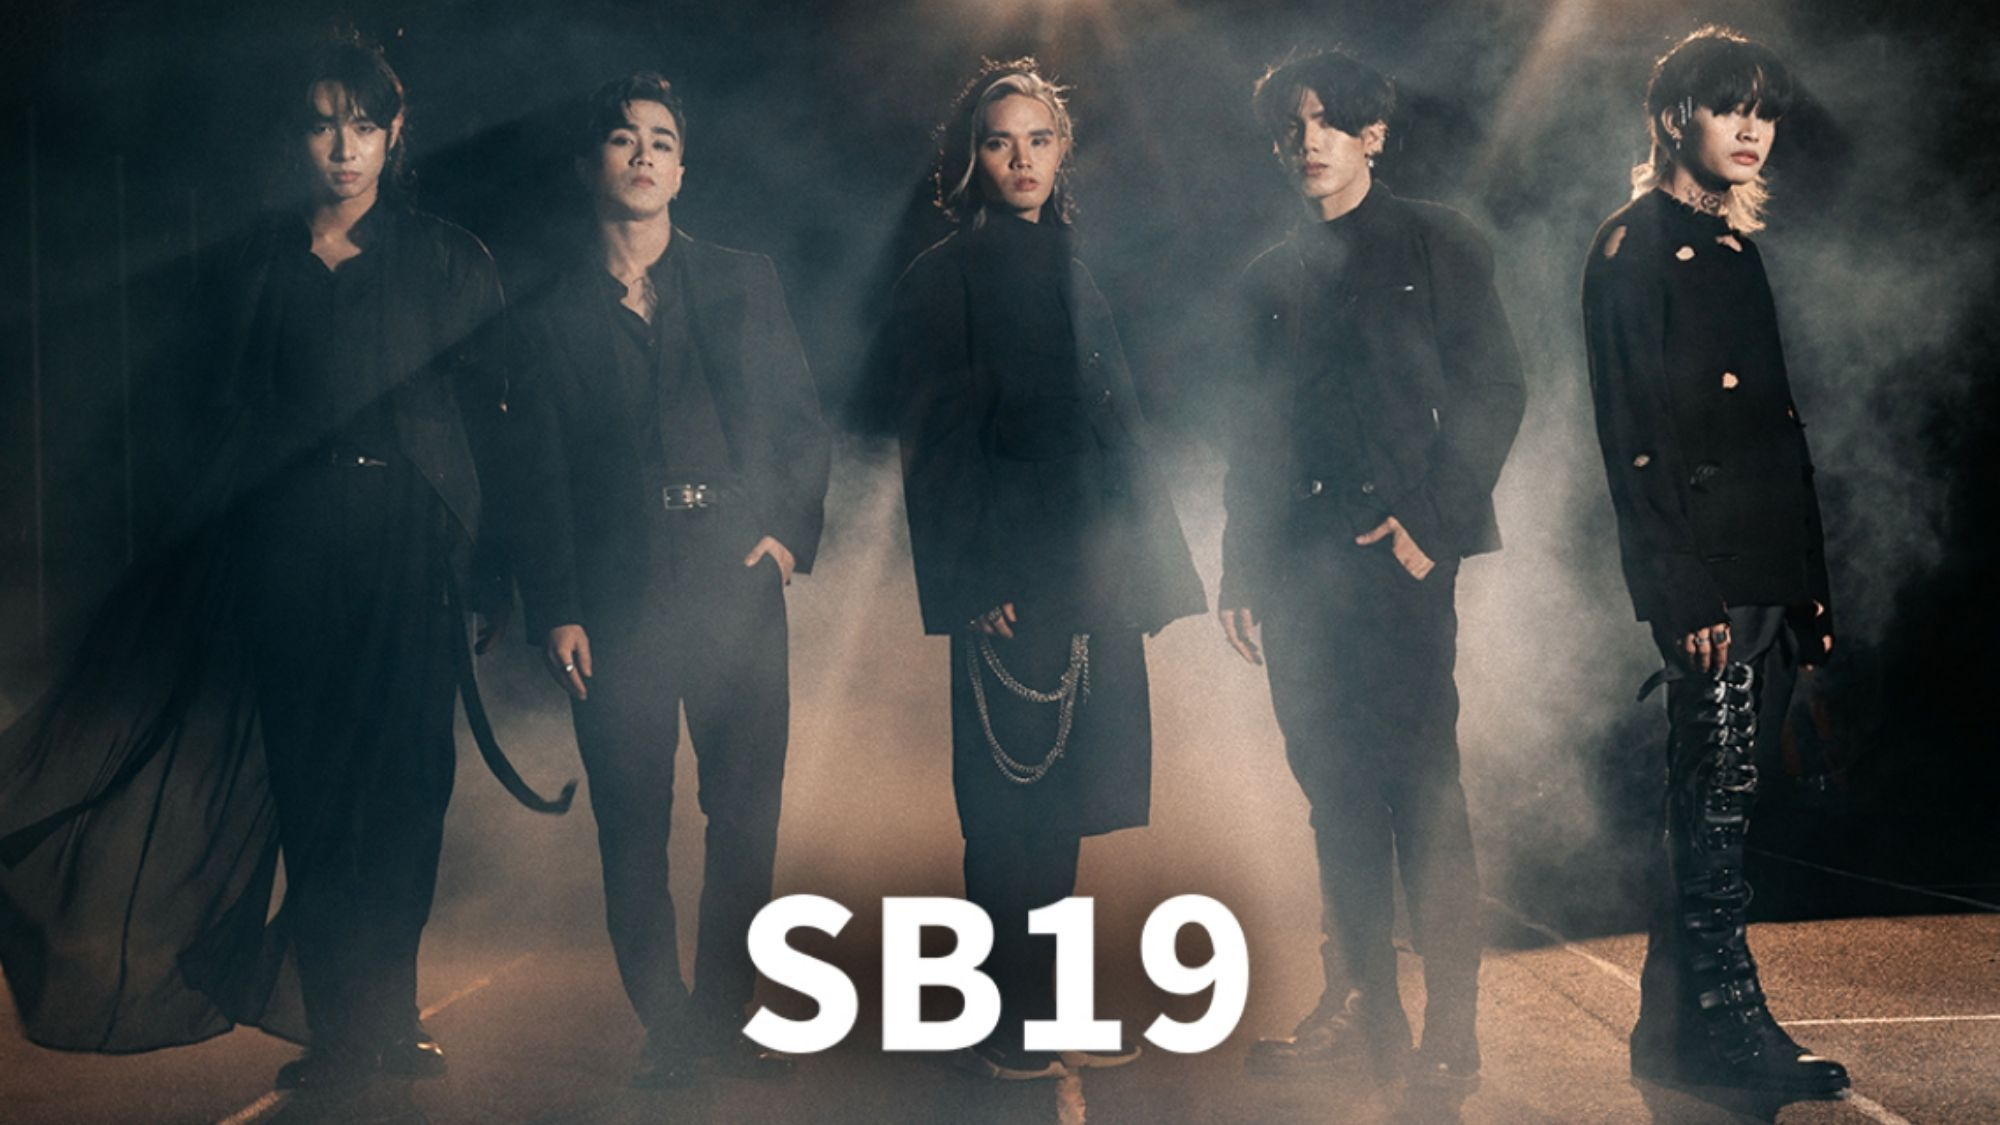 SB19 gets historic nod at BBMA 2021